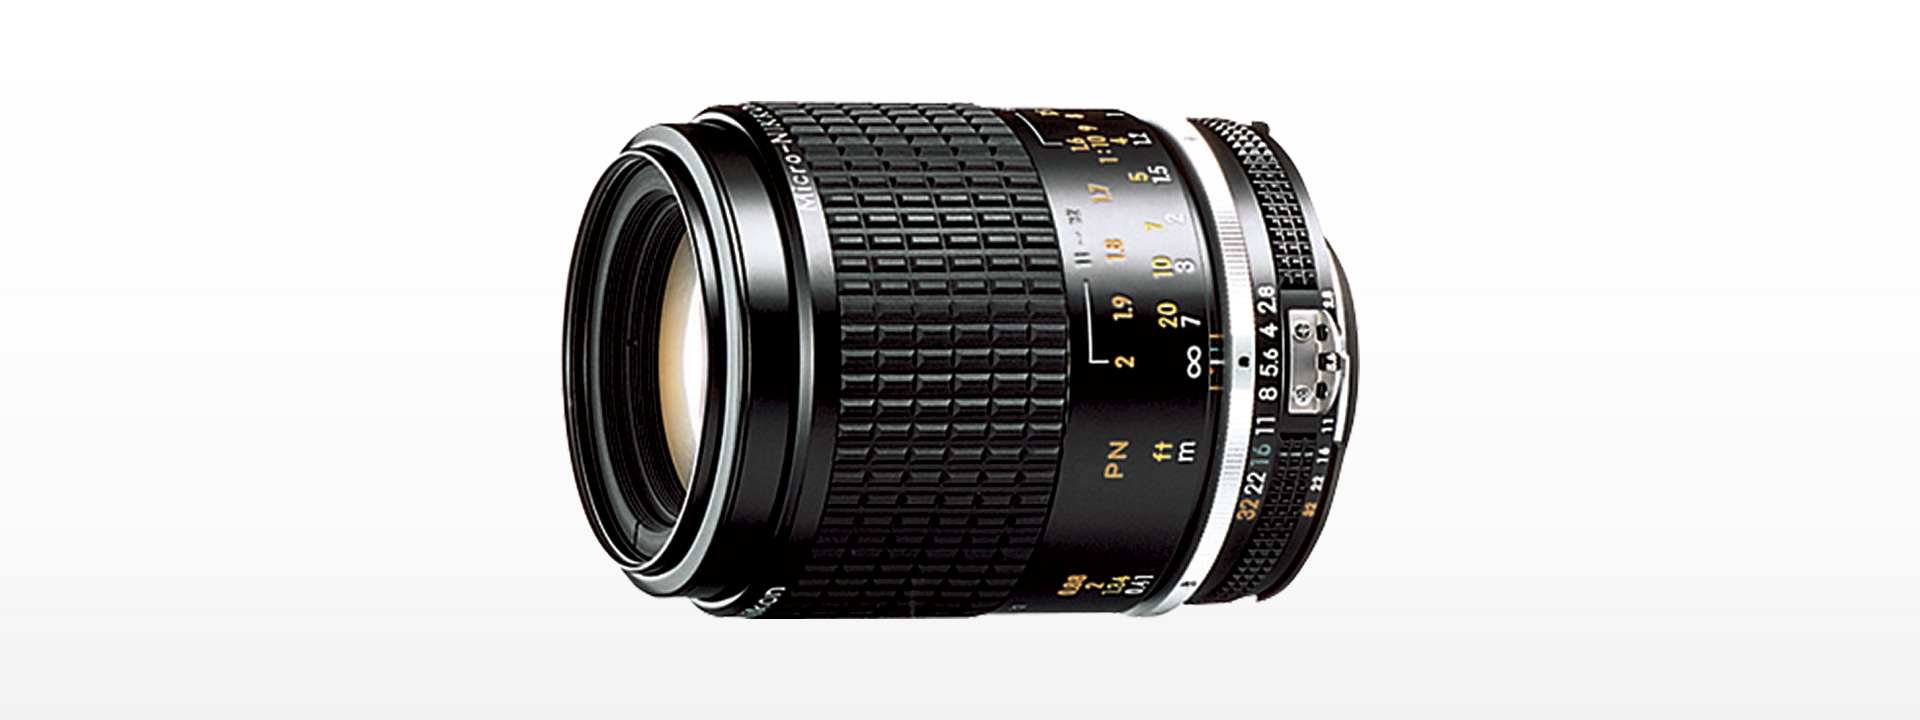 AI Micro-Nikkor 105mm f/2.8S